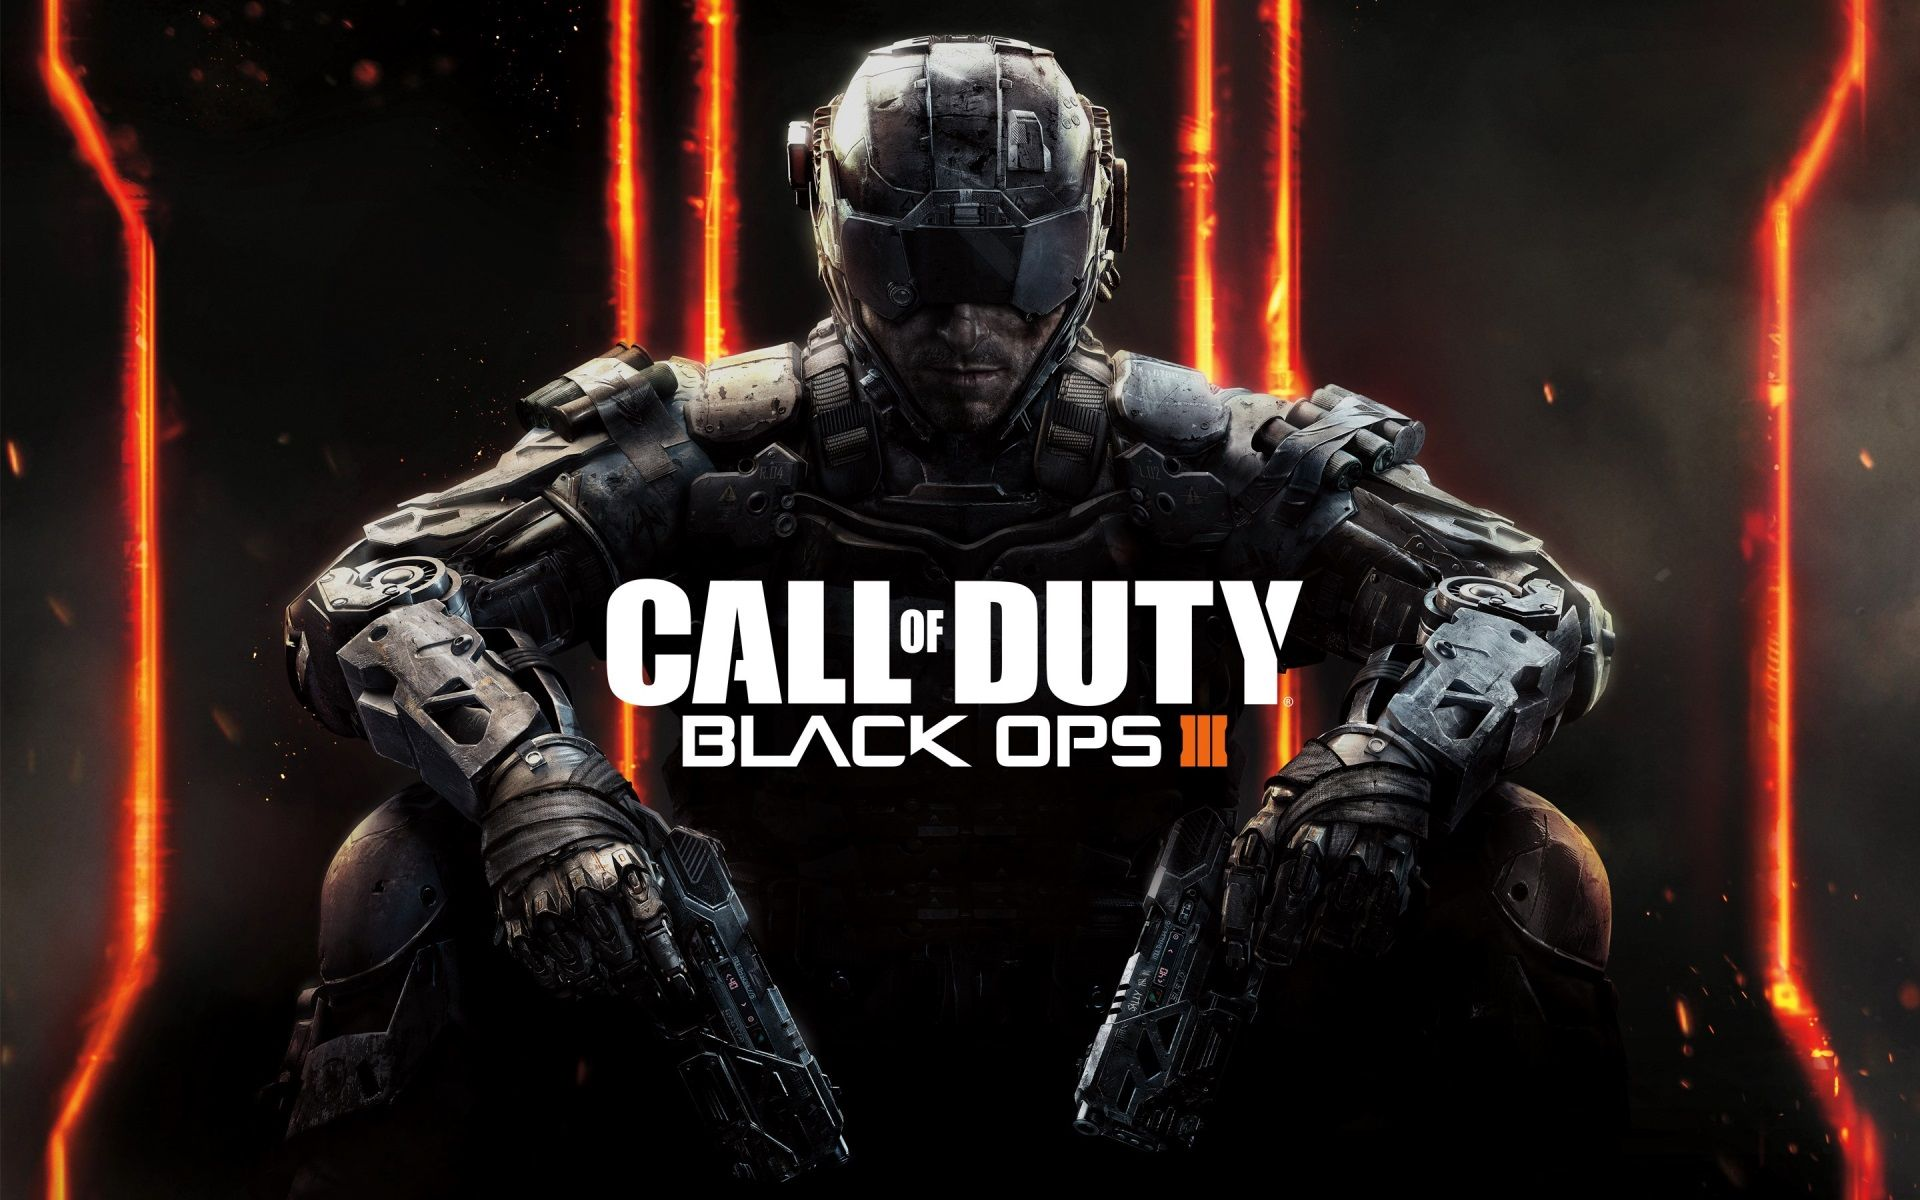 1920x1200 Call Of Duty Black Ops Backgrounds For Computer Call Of Duty Black Ops Iii Call Of Duty Black Call Of Duty Black Ops 3